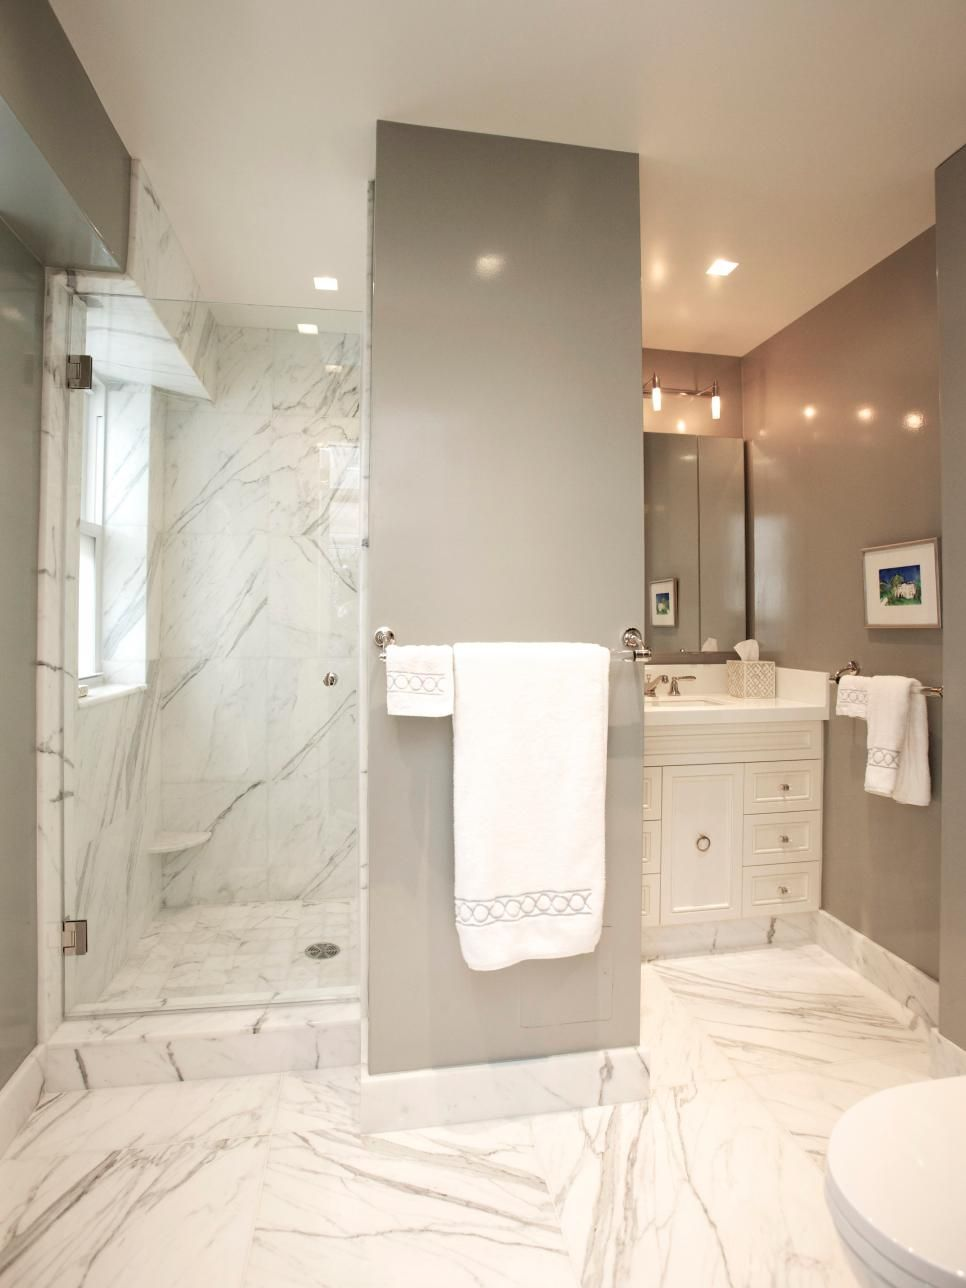 20 Luxurious Bathroom Makeovers From Our Stars | Marble tiles, Small ...